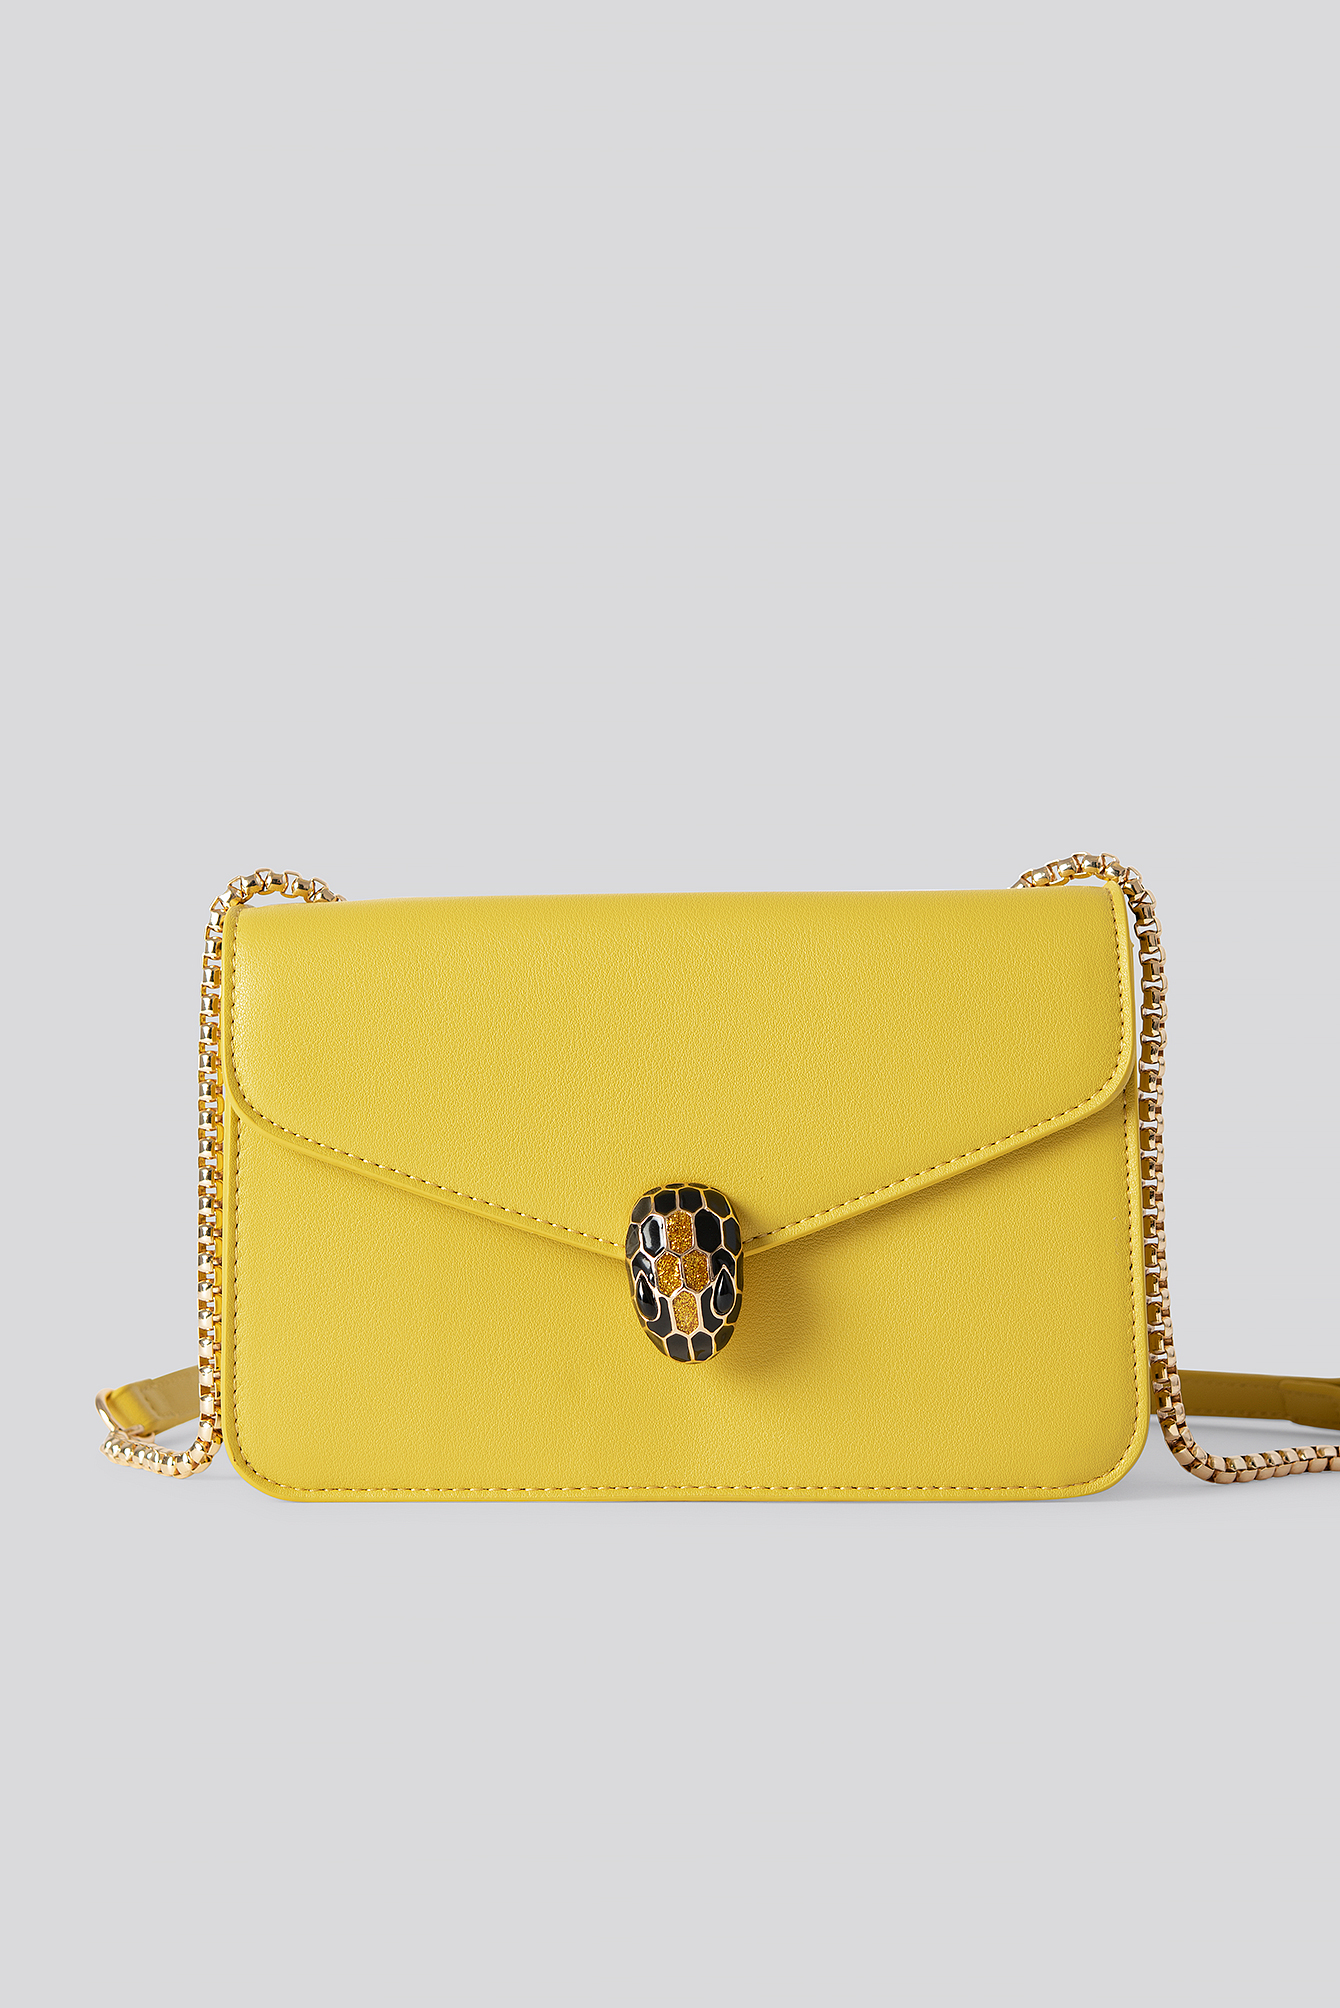 Burned Yellow Snake Head Closure Bag